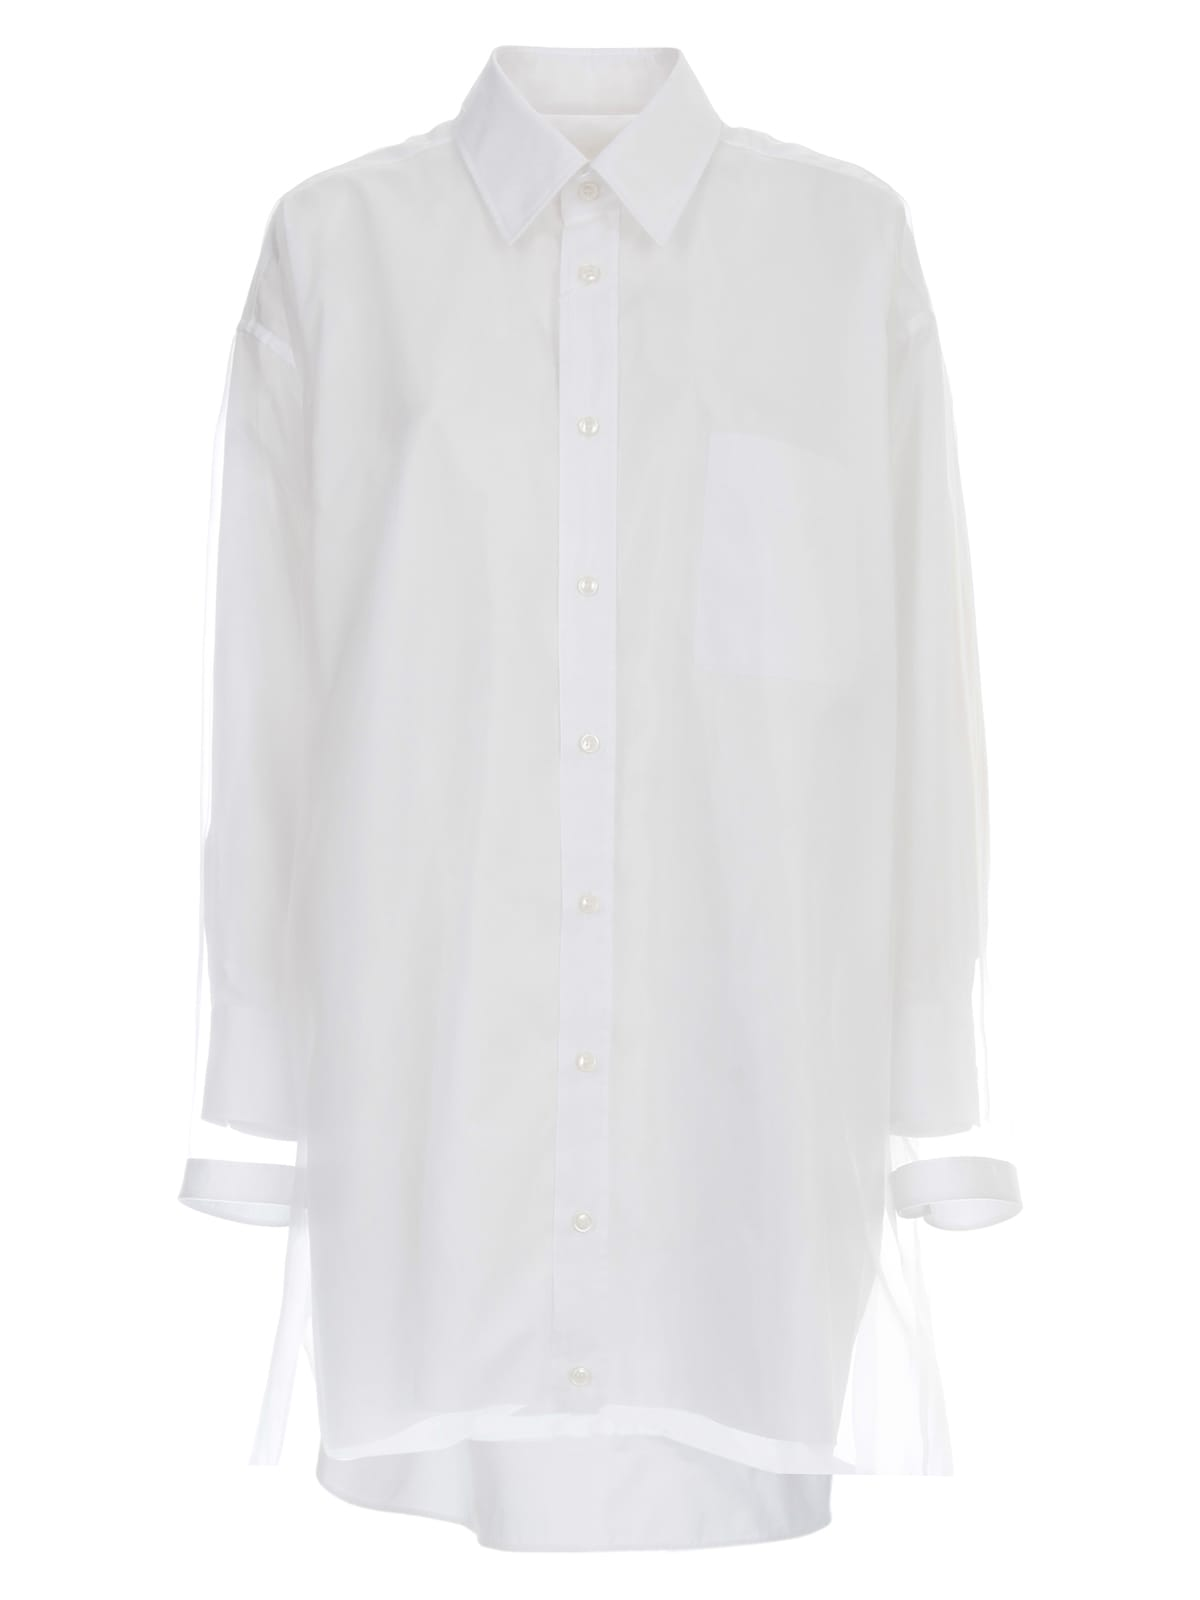 Buy Maison Margiela Popeline Cotton Dress online, shop Maison Margiela with free shipping